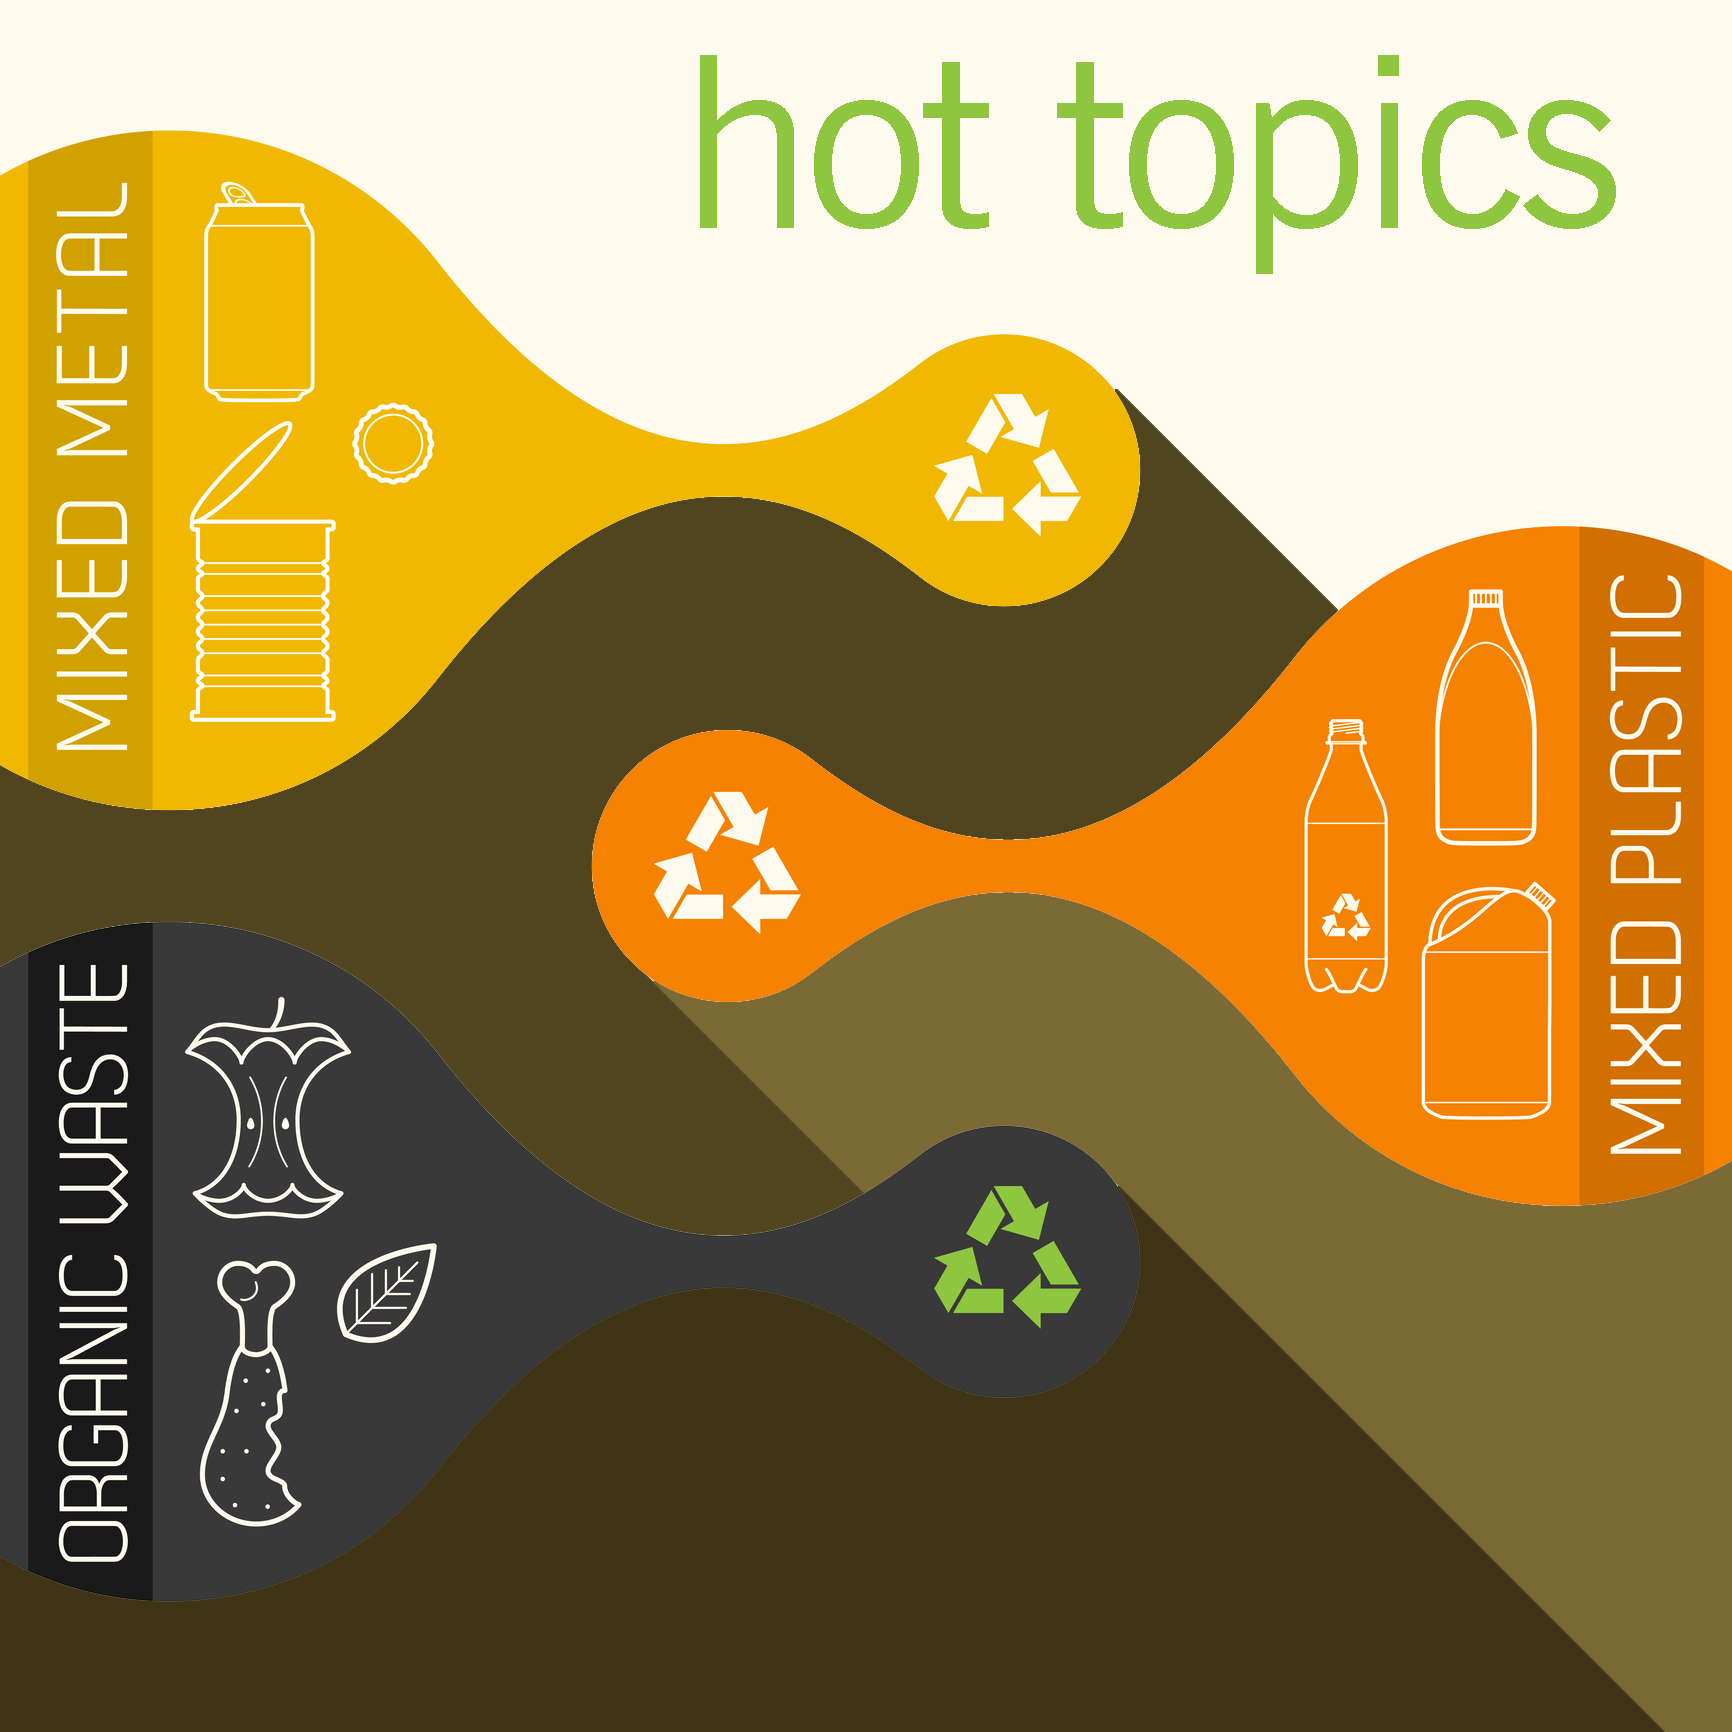 business-of-recycling-organics-landfill-scs-engineers-hot-topics